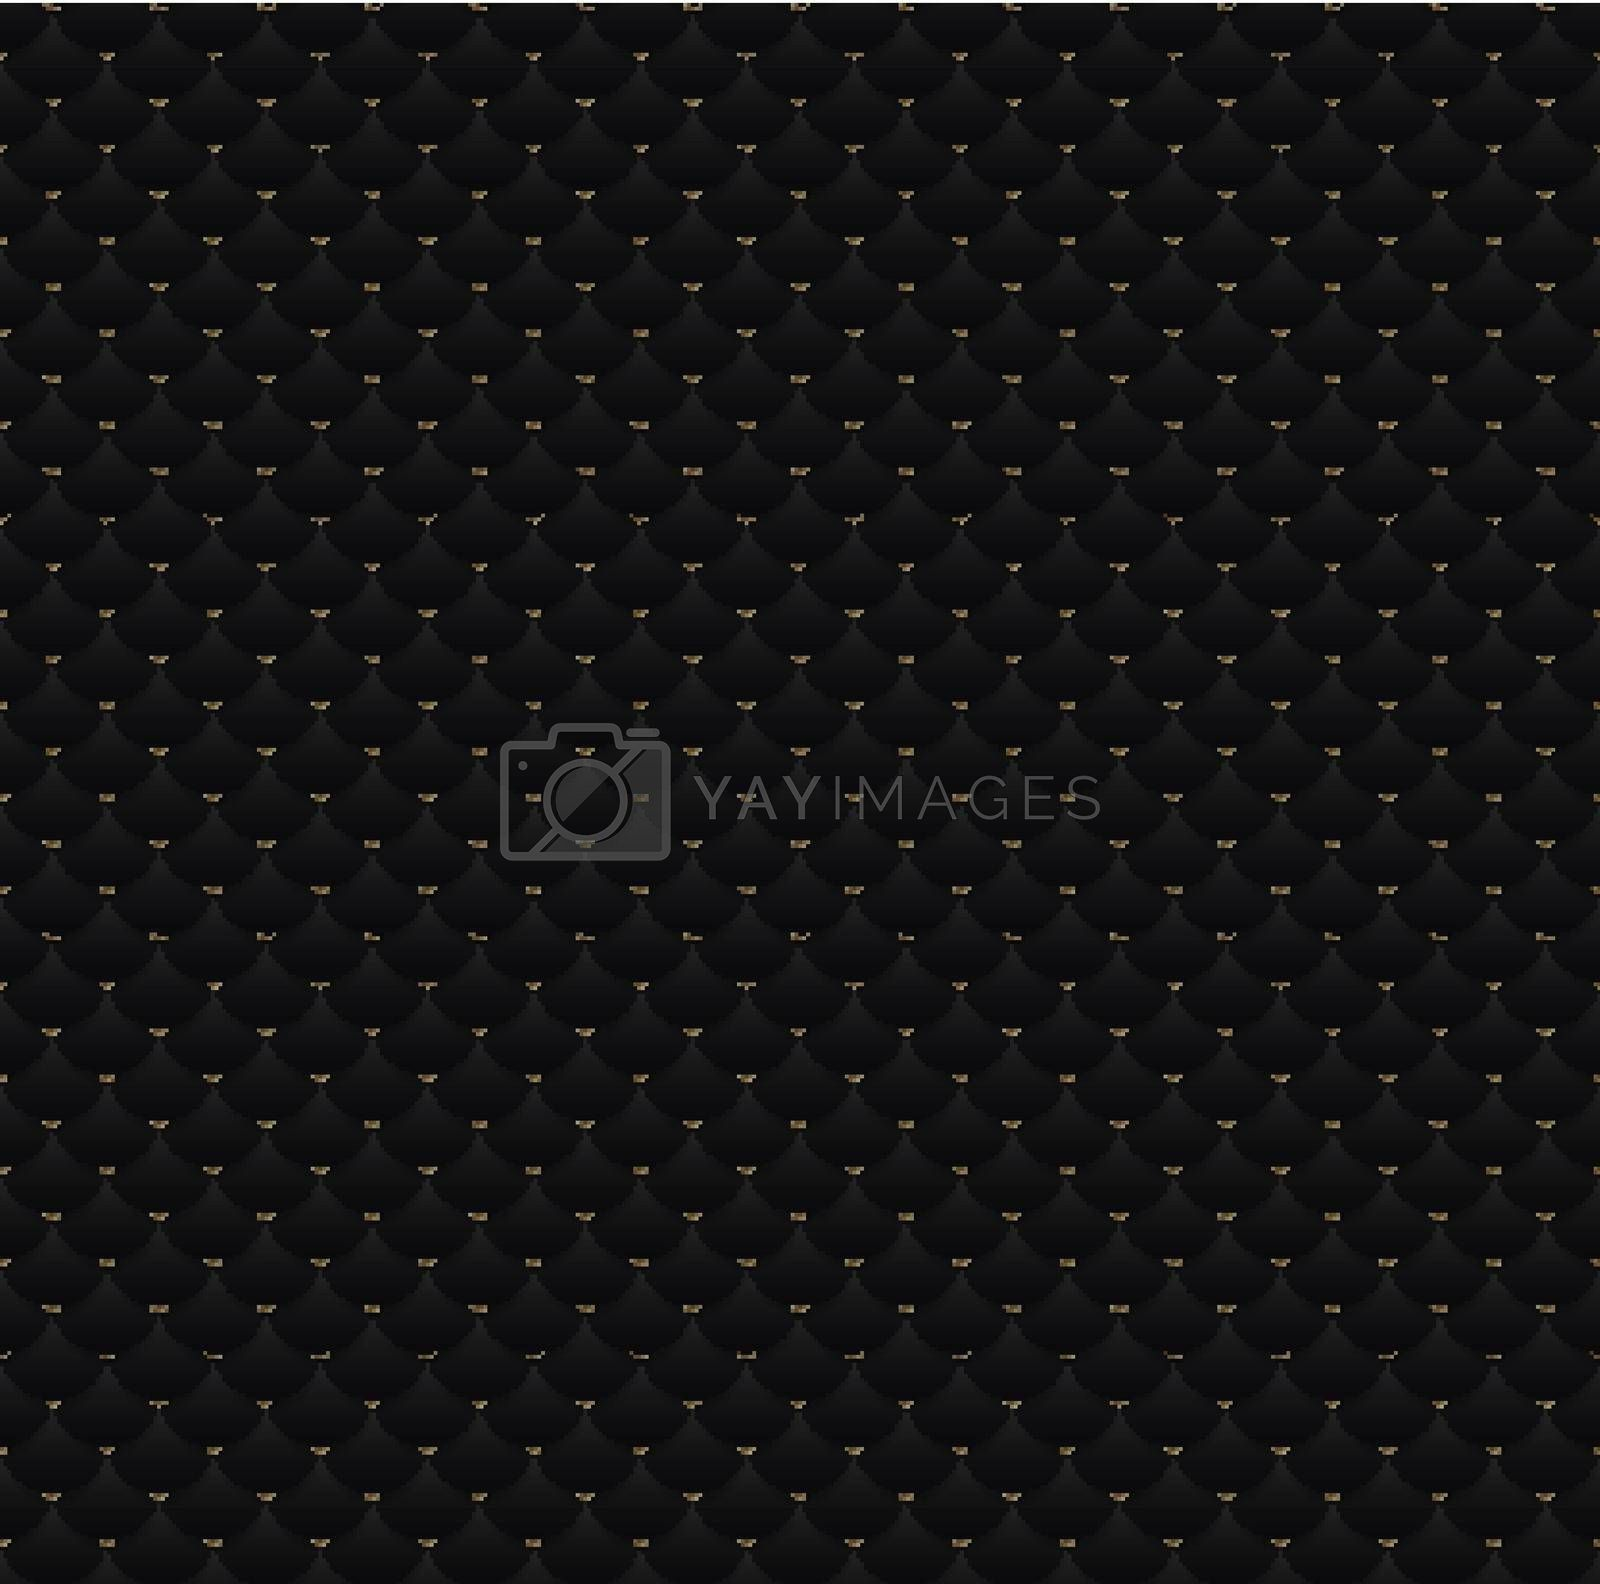 Elegant seamless pattern black circles with gold dots on dark background texture. Luxury premium template for Invitation card, banner, poster, flyer, leaflet, brochure, etc. Vector illustration